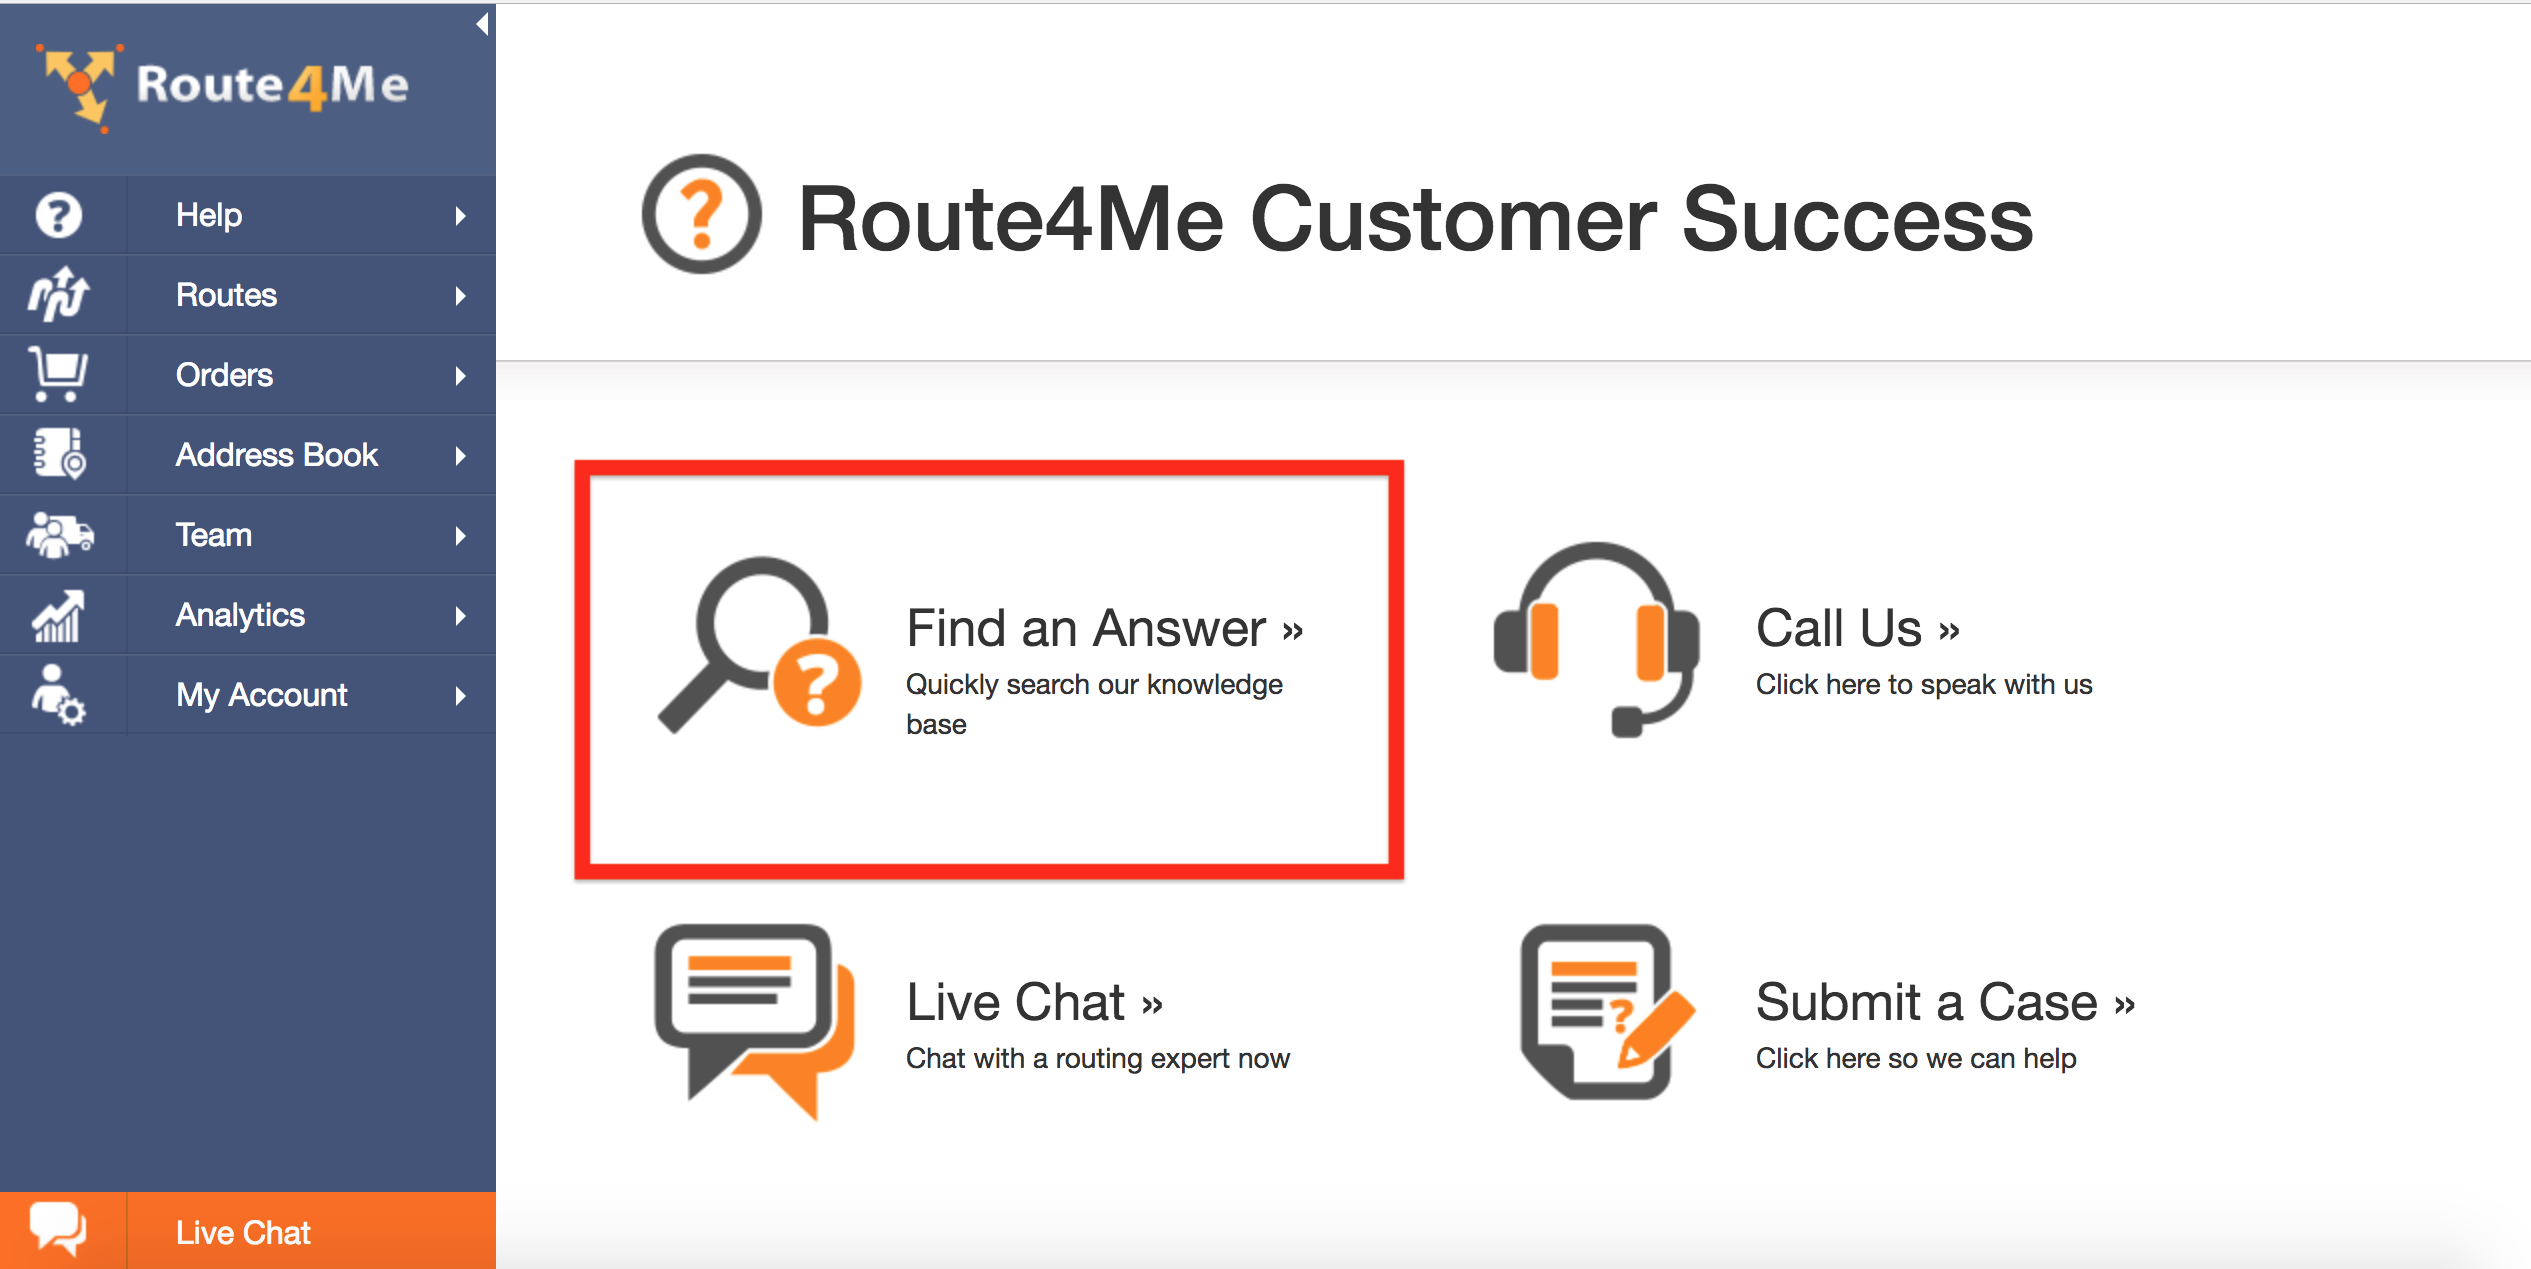 Route4Me's Customer Success Department